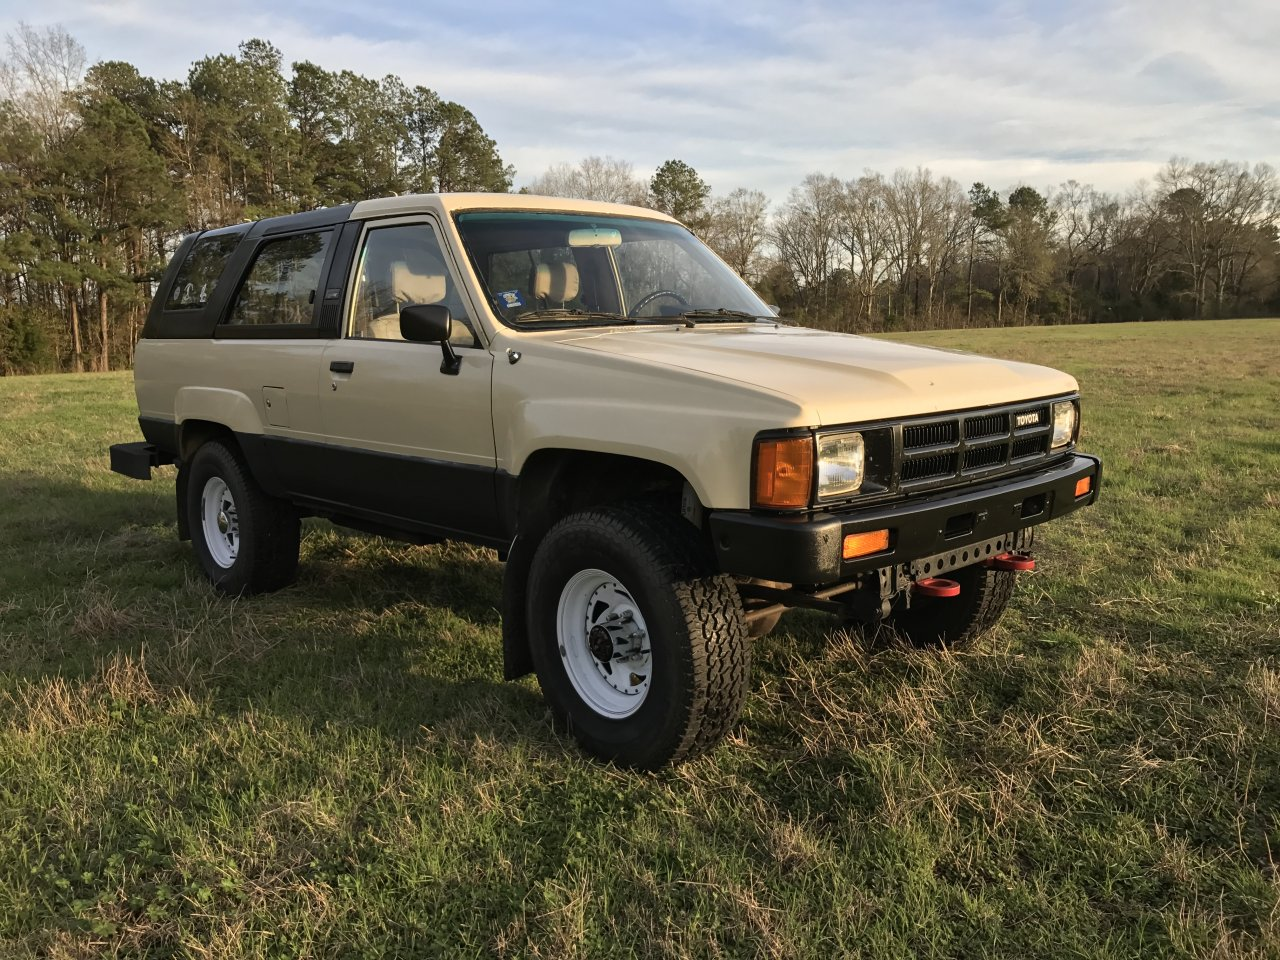 for sale 1985 toyota 4runner 22re with factory solid. Black Bedroom Furniture Sets. Home Design Ideas